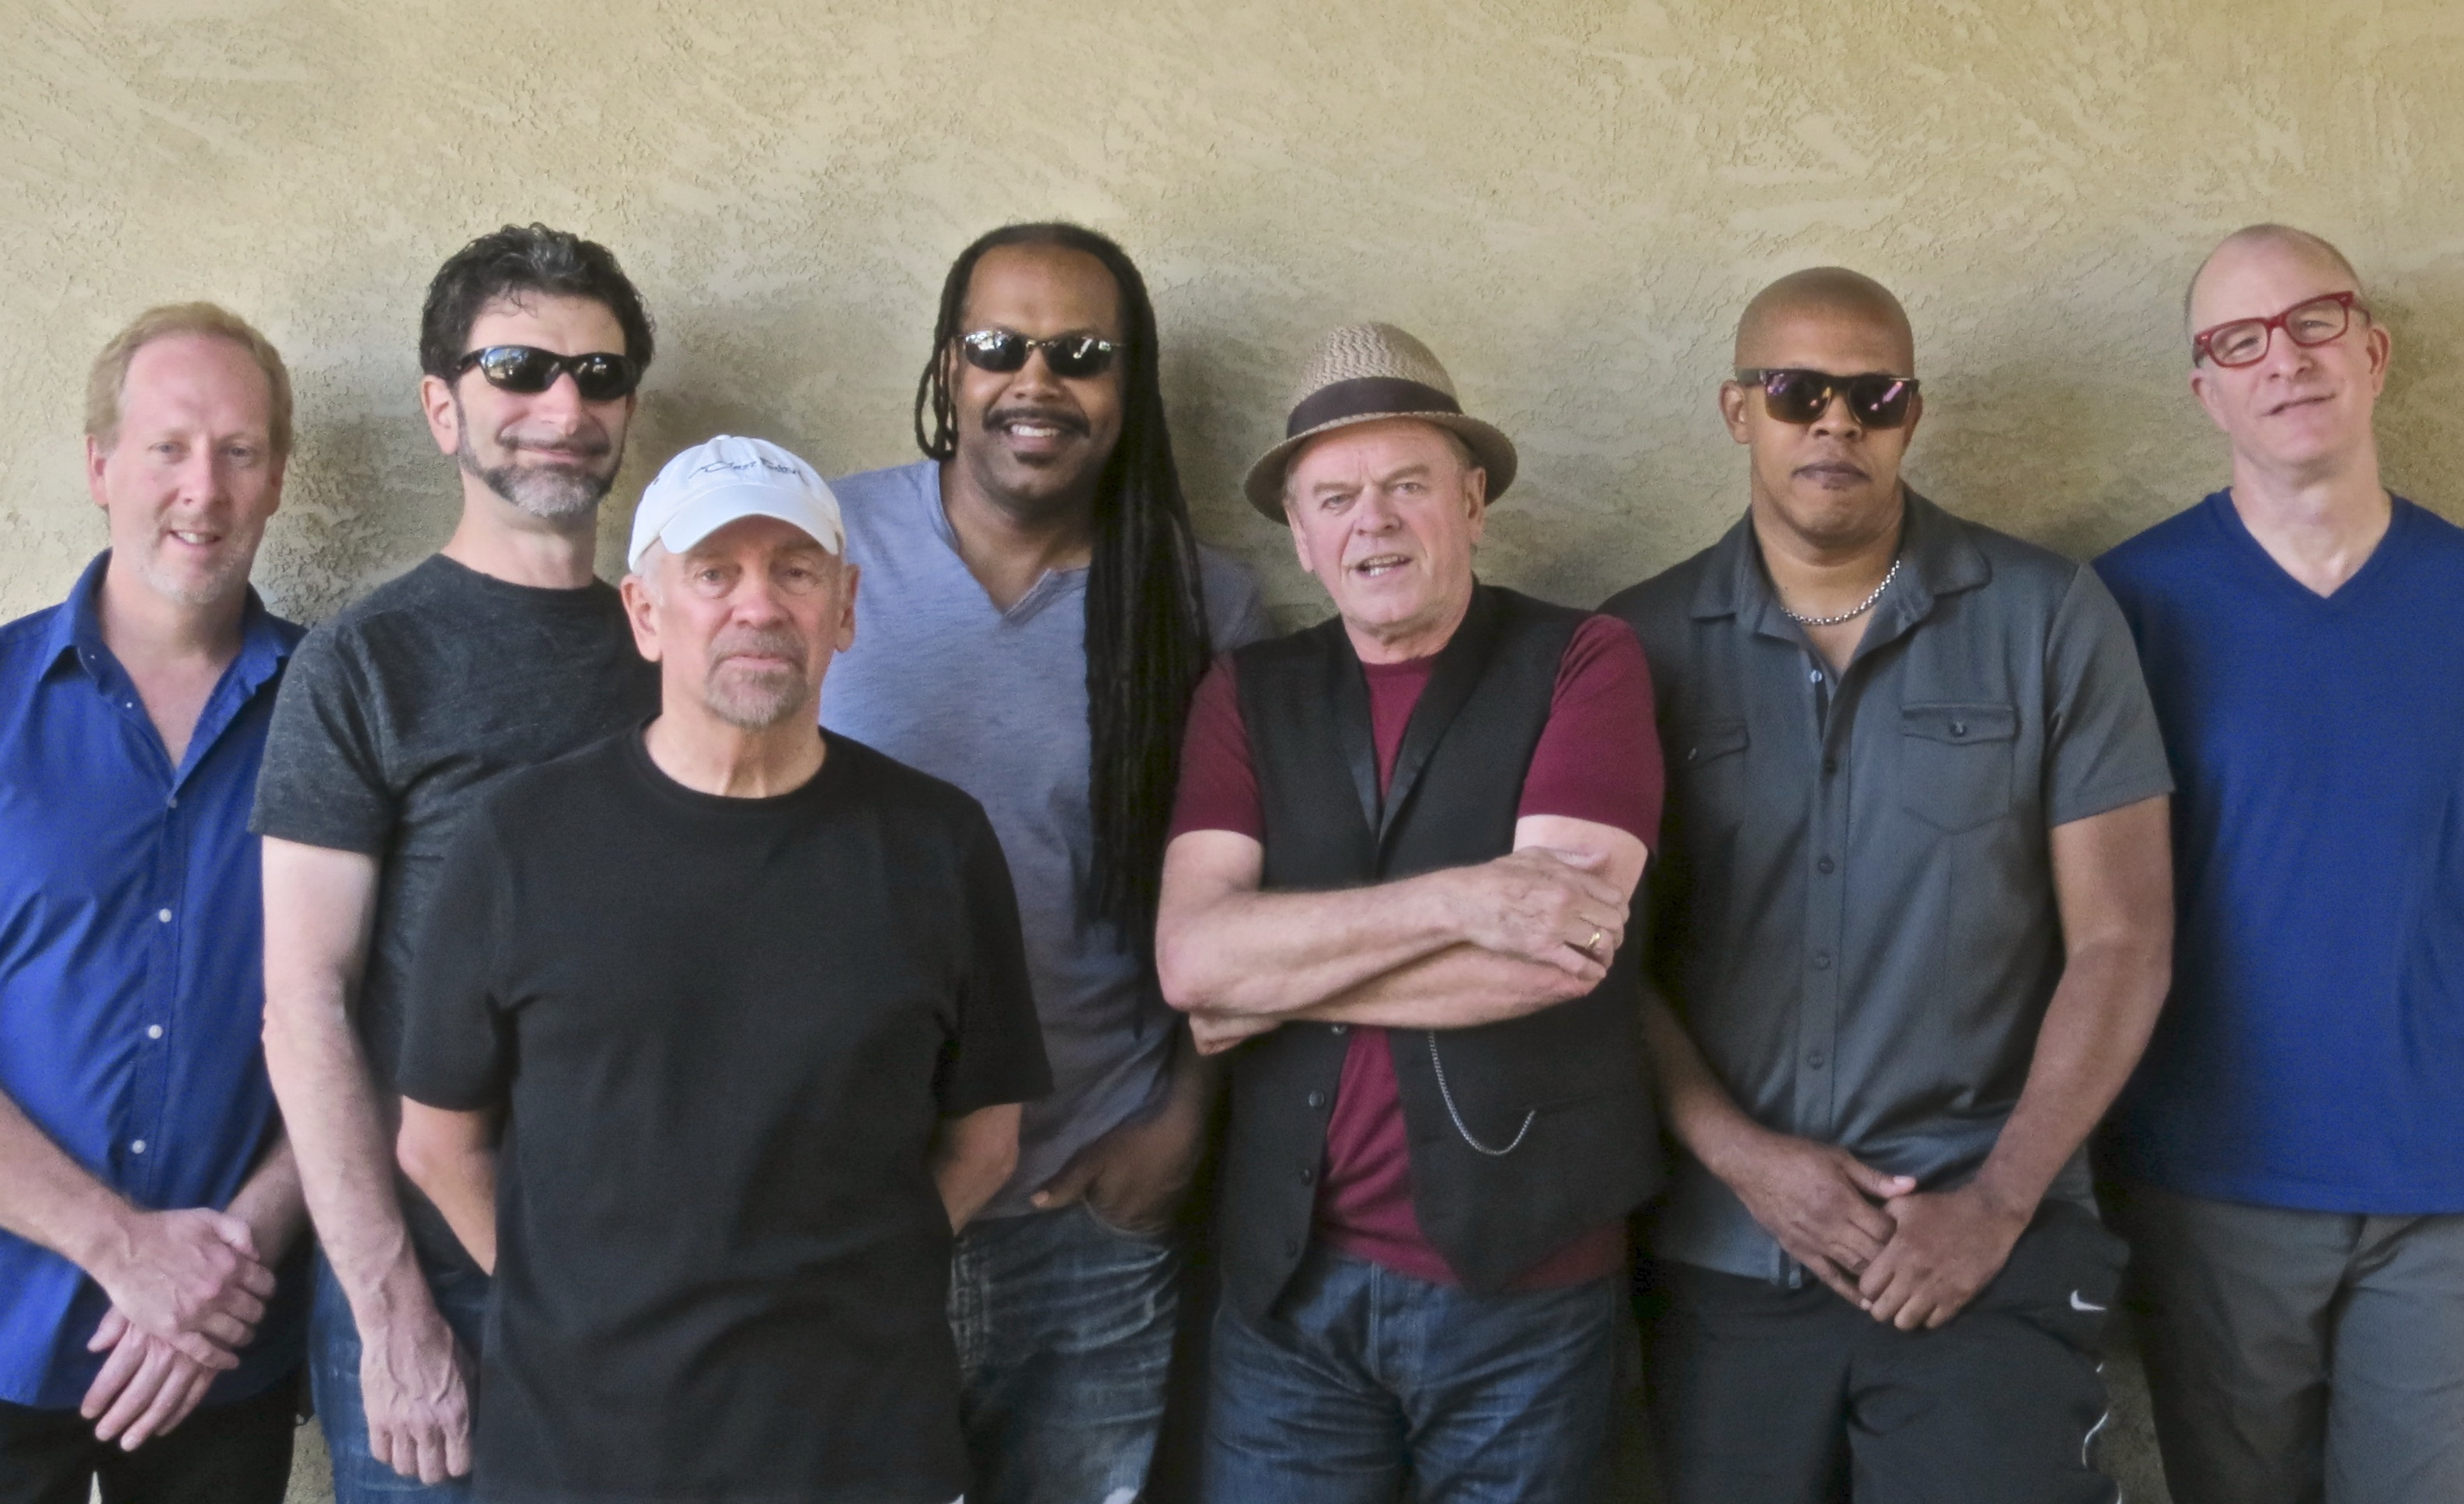 TBT - Average White Band  - Wednesday April 18, 2018